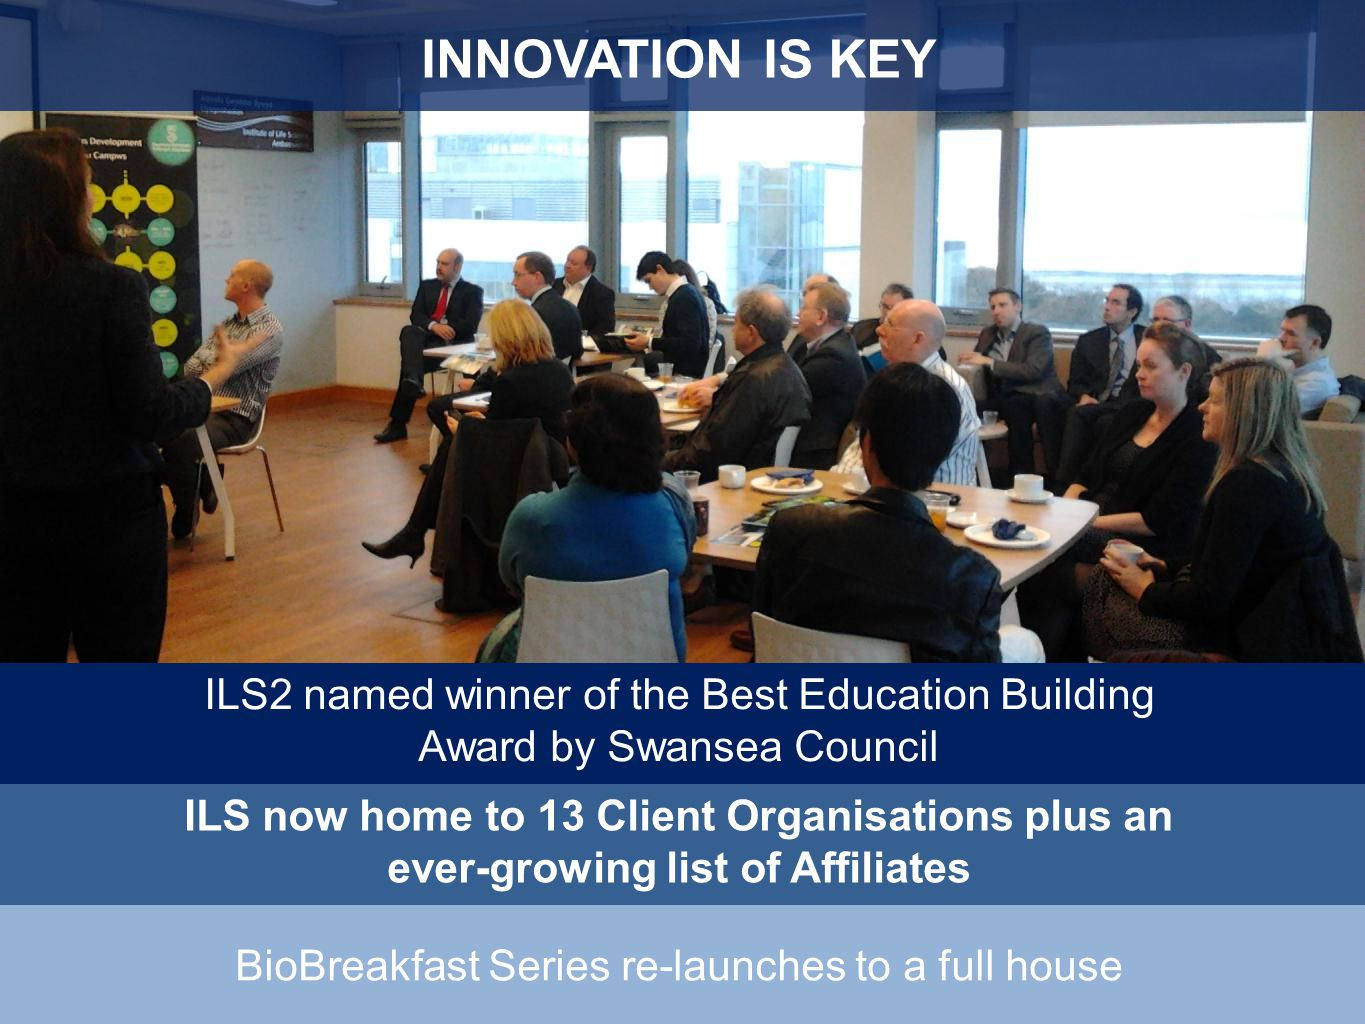 INNOVATION IS KEY ILS now home to 13 Client Organisations plus an ever-growing list of Affiliates BioBreakfast Series re-launches to a full house ILS2 named winner of the Best Education Building Award by Swansea Council